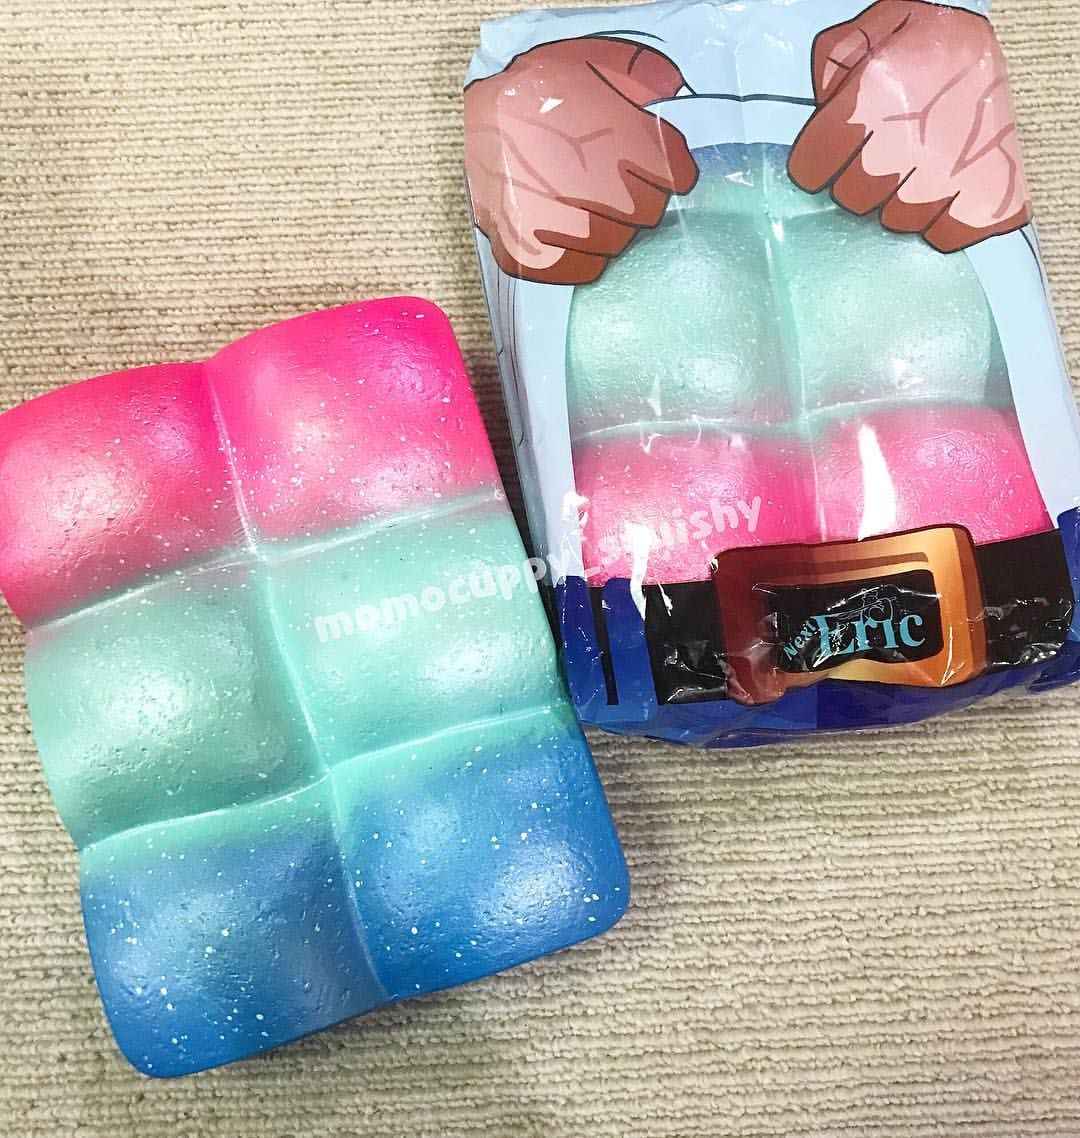 galaxy muscle bread by eric 170rb / pcs super slow, soft and scented   BNIP, please note all the ...